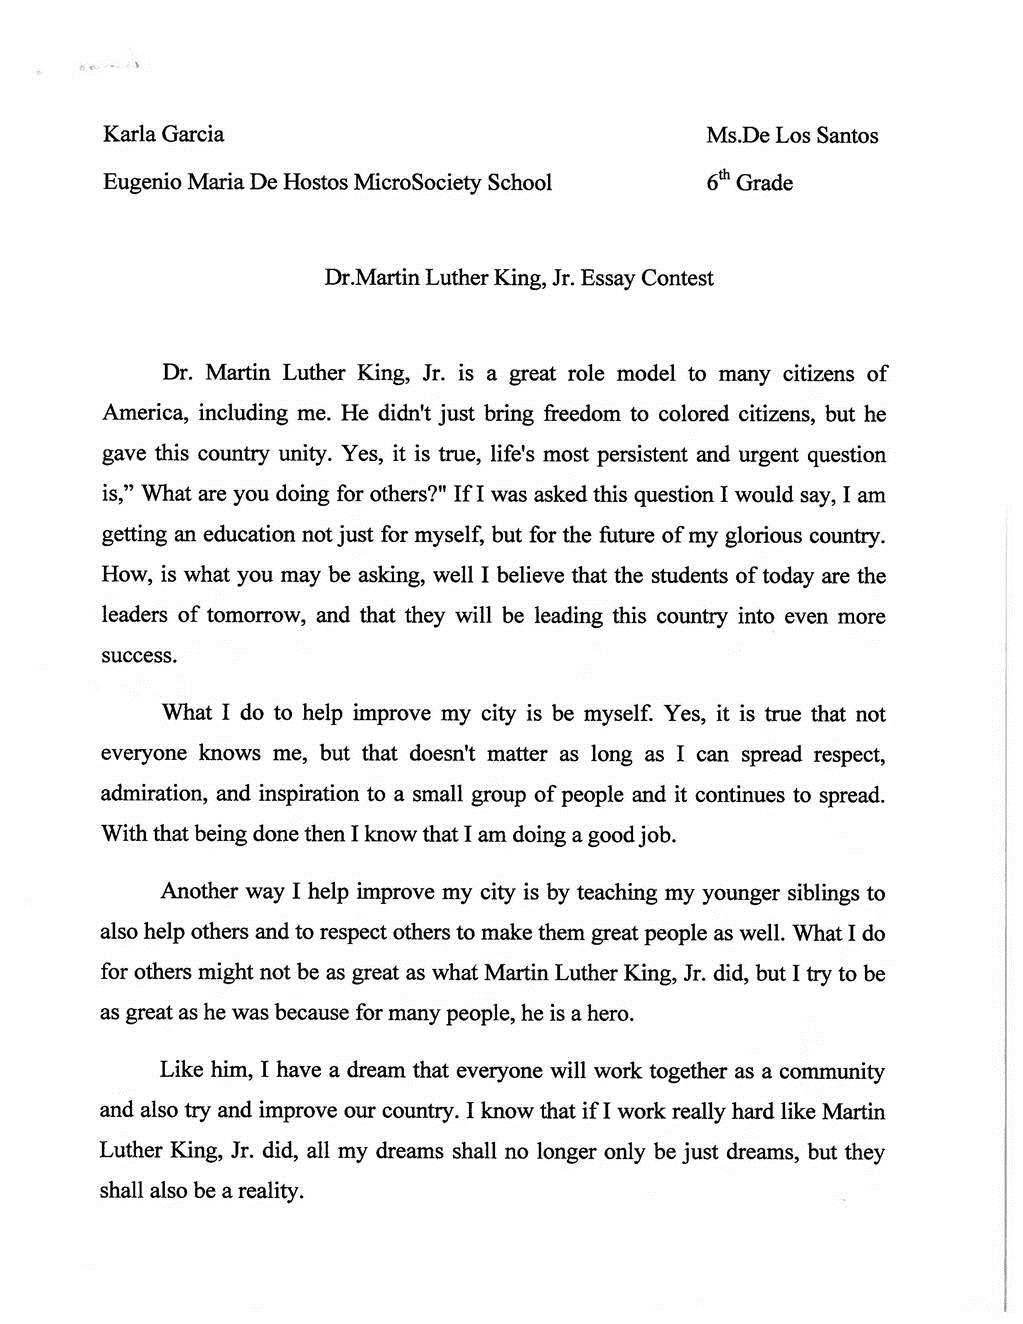 essay about forgiveness forgiveness essays essay about forgiveness  mlk essays essay describing mlk as a historical leader the martin essays about martin luther king forgiveness reconciliation